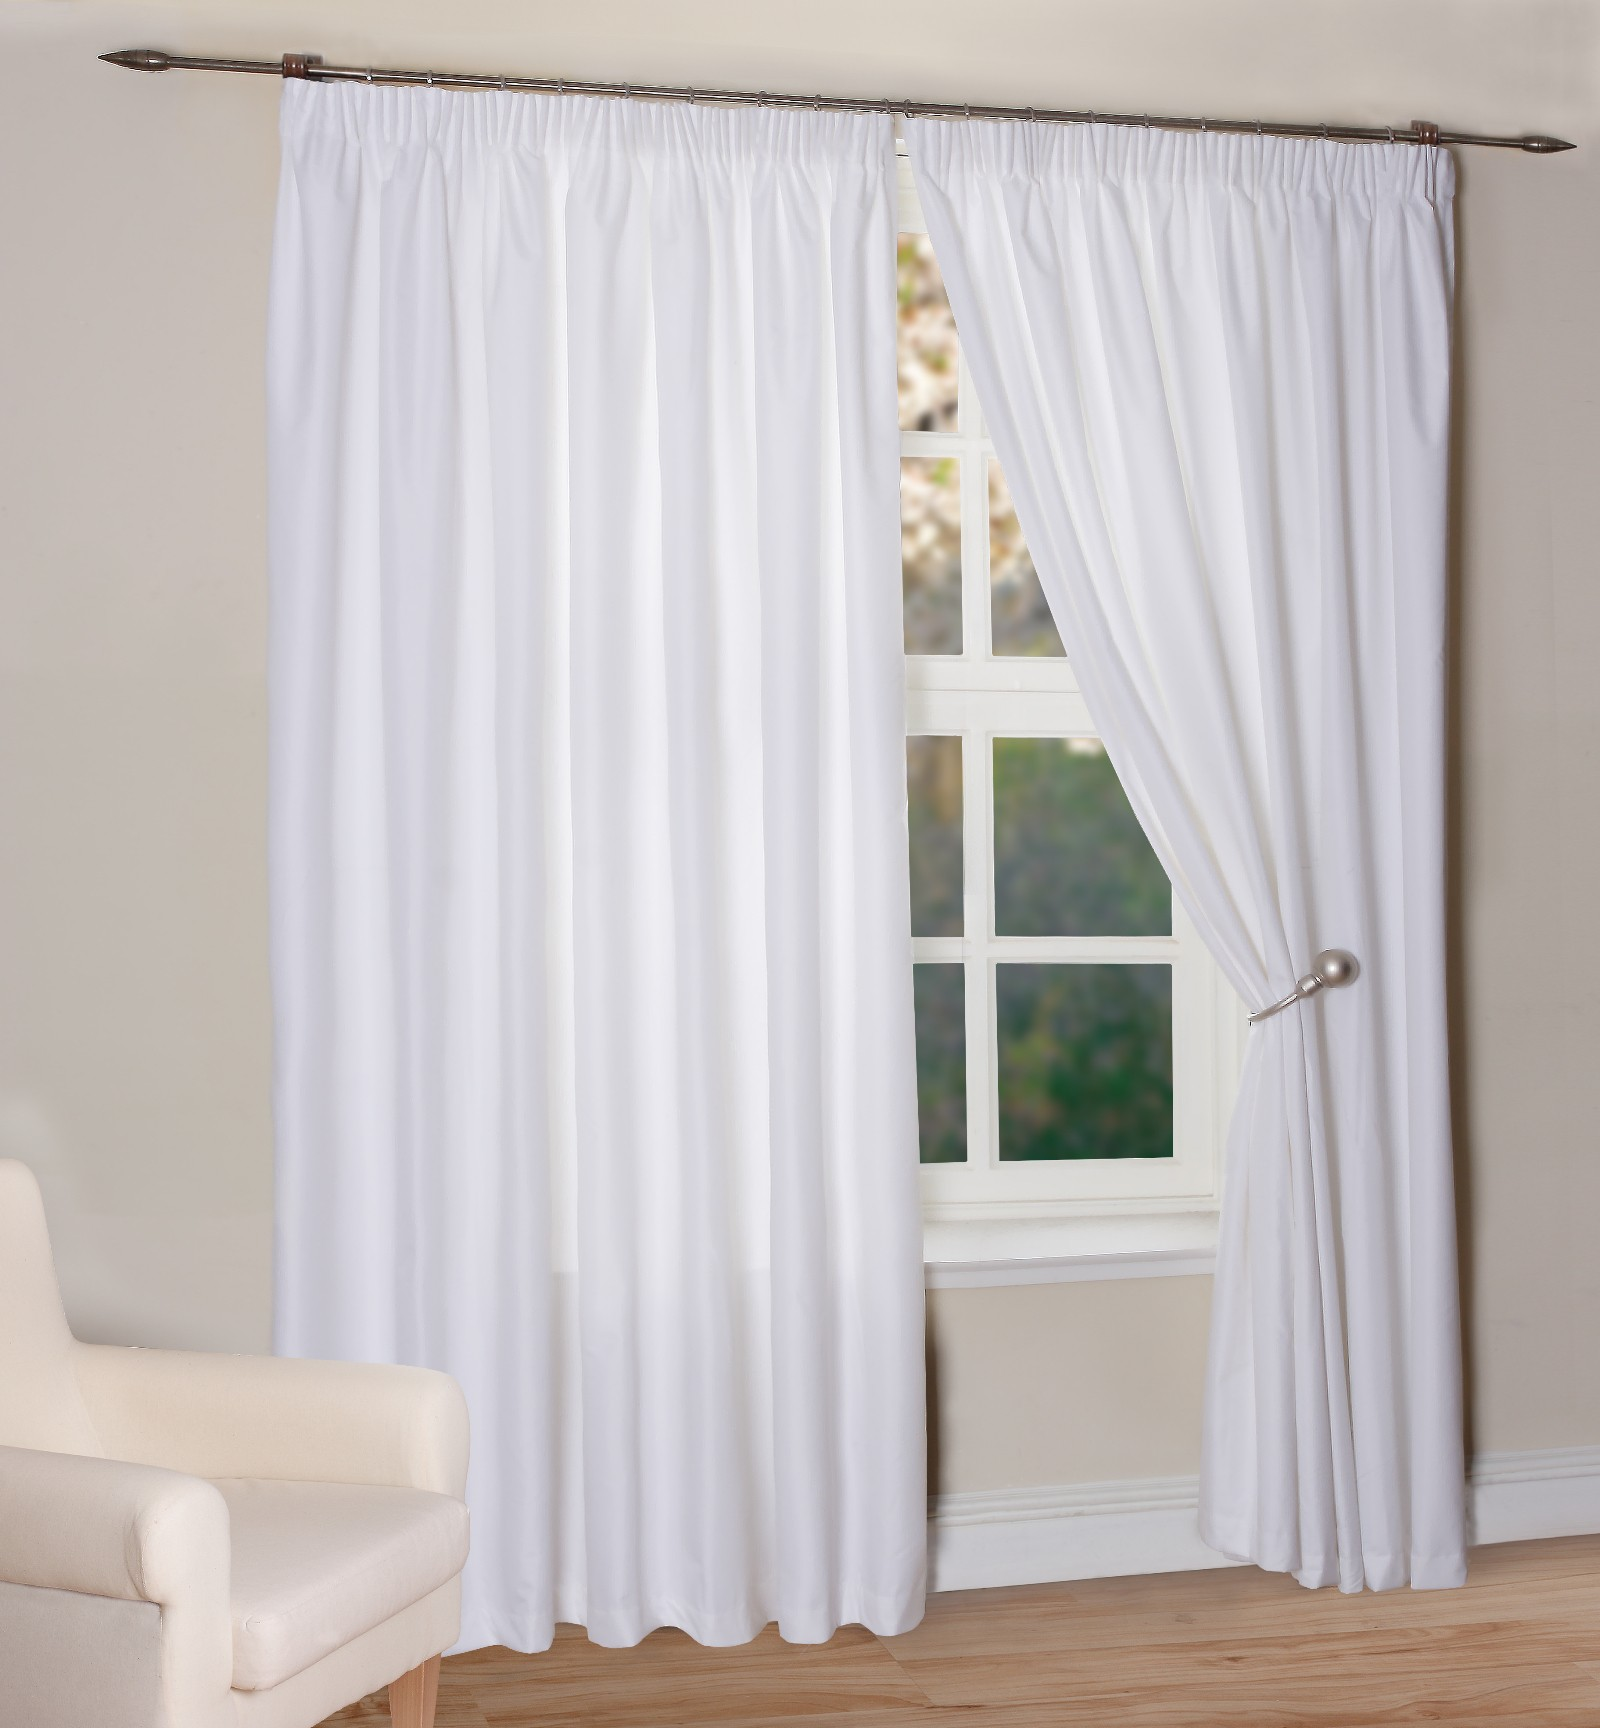 Soundproof Curtains Target | Front Door Window Treatments | Cheap Window Treatments